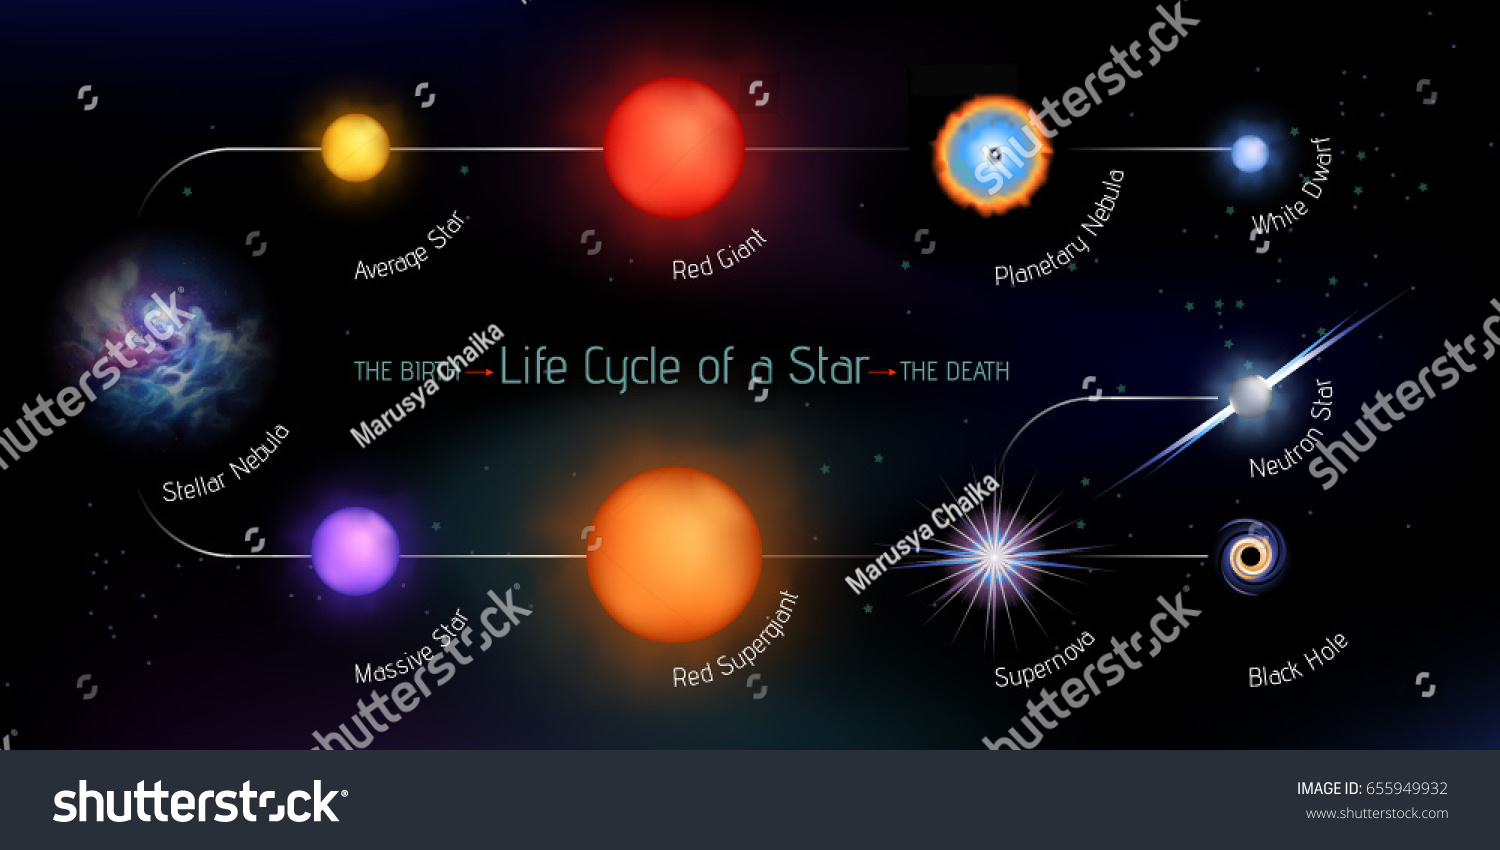 diagram of a life cycle of a star